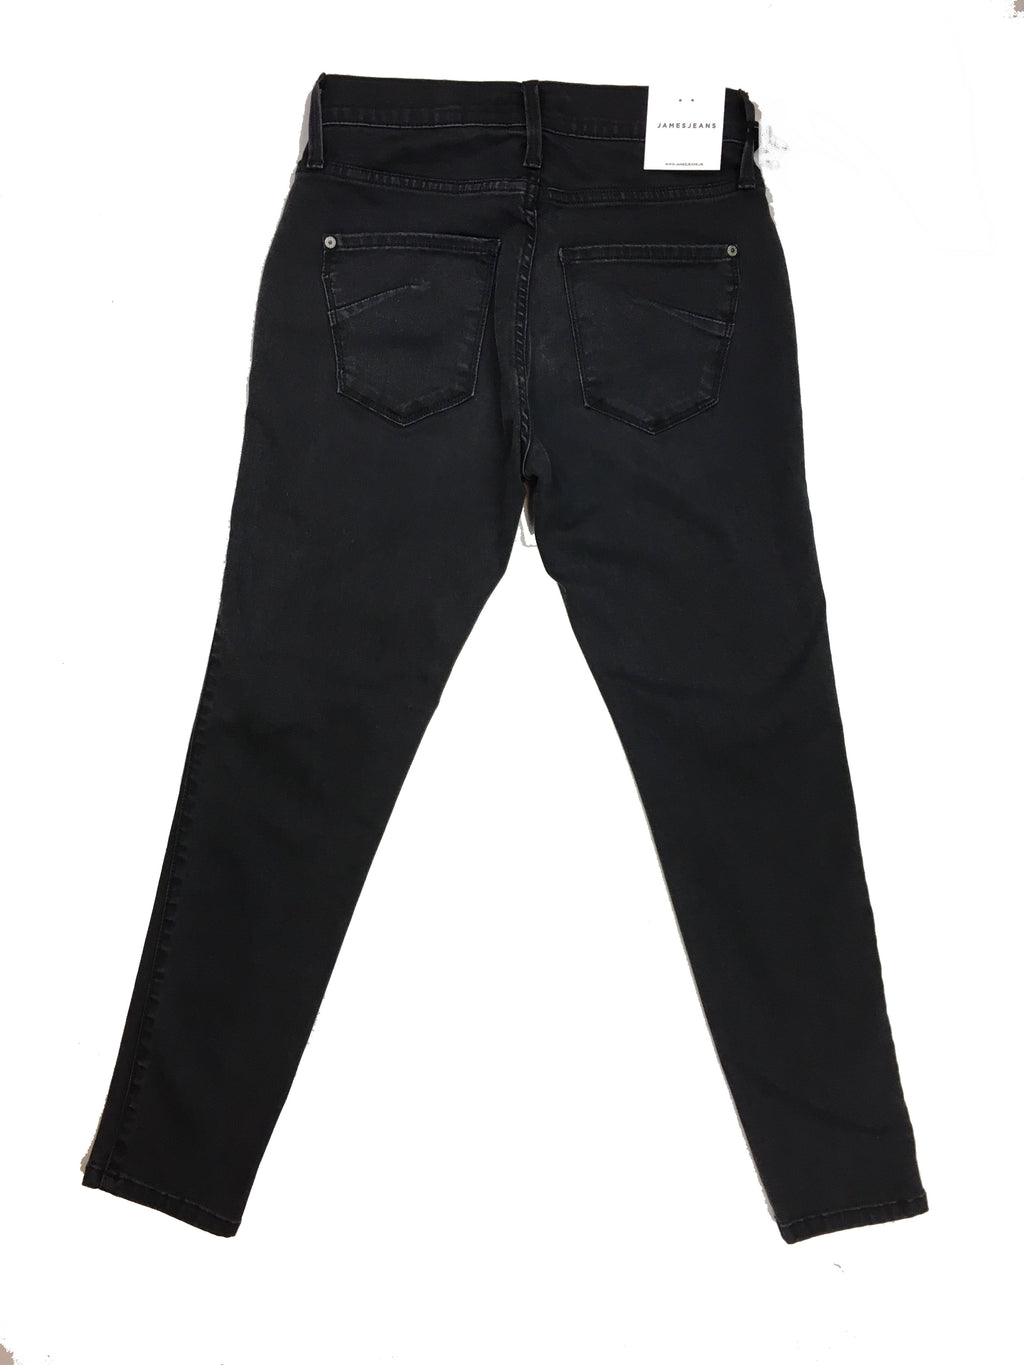 James Jeans Womens Twiggy Skinny Ankle Jean with Zipper in Blacked Out